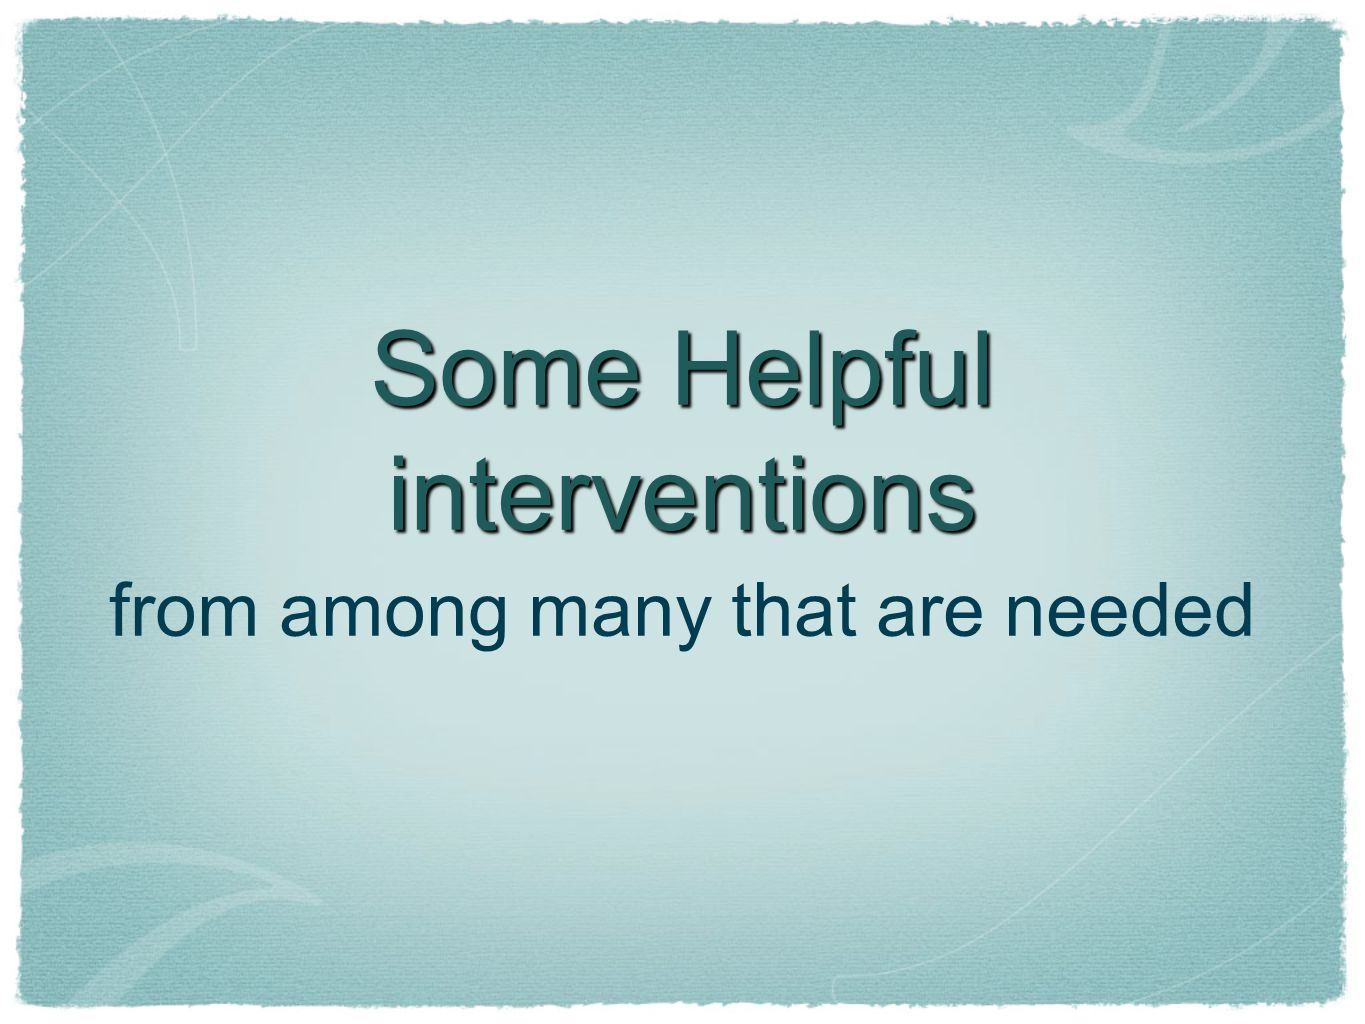 Some Helpful interventions from among many that are needed